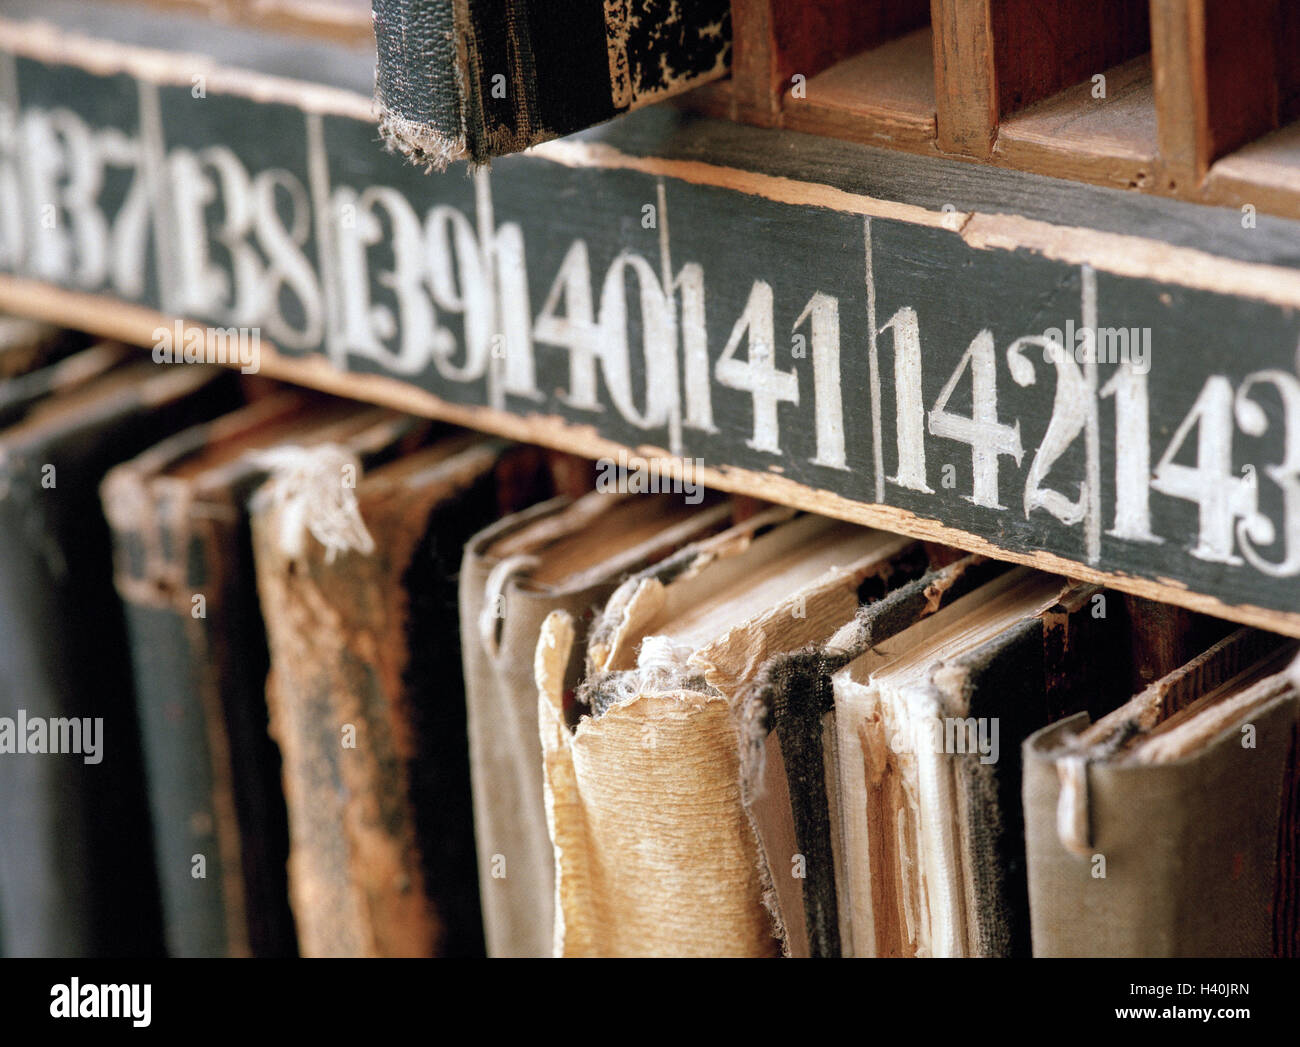 Weaving mill, shelf, sample books, numbers, detail, nostalgically, economy, industry, craft, handicraft, manual - Stock Image